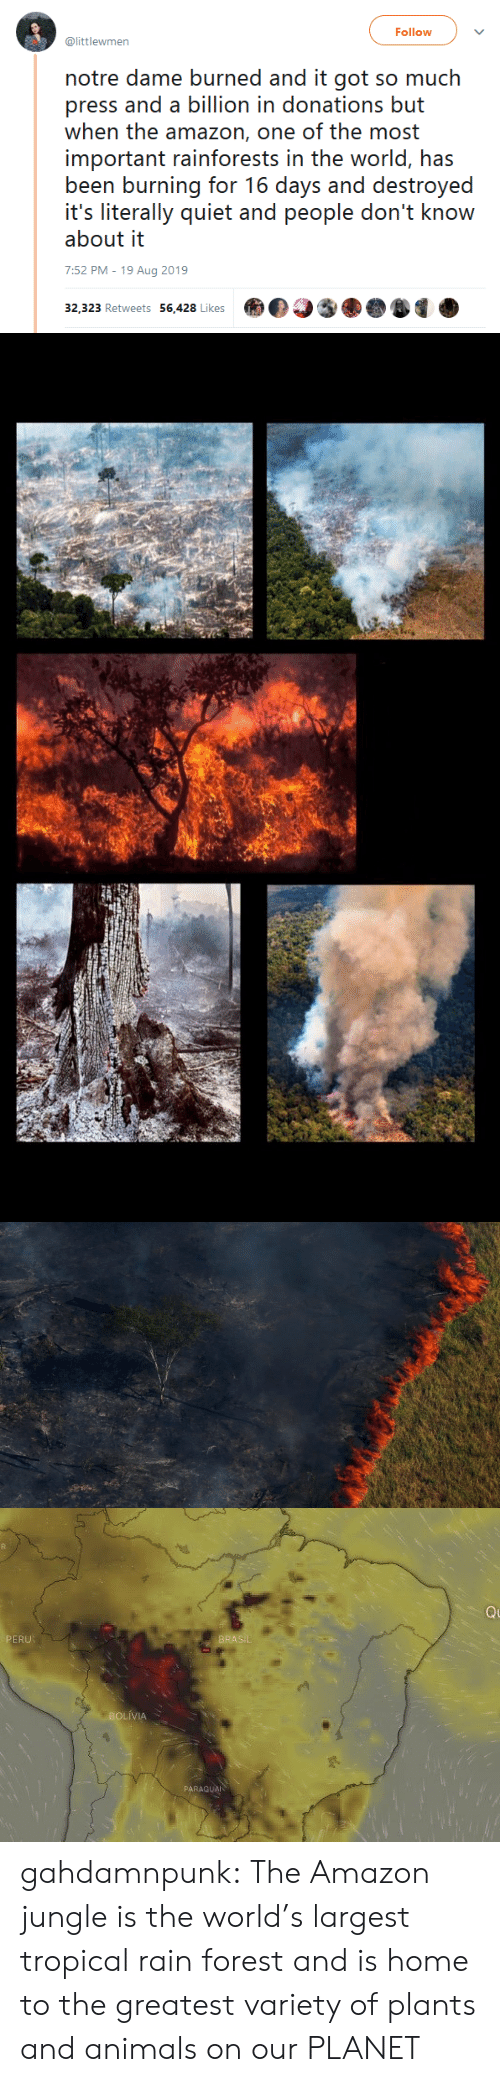 brasil: Follow  @littlewmen  notre dame burned and it got so much  press and a billion in donations but  when the amazon, one of the most  important rainforests in the world, has  been burning for 16 days and destroyed  it's literally quiet and people don't know  about it  7:52 PM - 19 Aug 2019  32,323 Retweets 56,428 Likes   Q  PERU  BRASIL  BOLIVIA  PARAGUAN gahdamnpunk: The Amazon jungle is the world's largest tropical rain forest and is home to the greatest variety of plants and animals on our PLANET